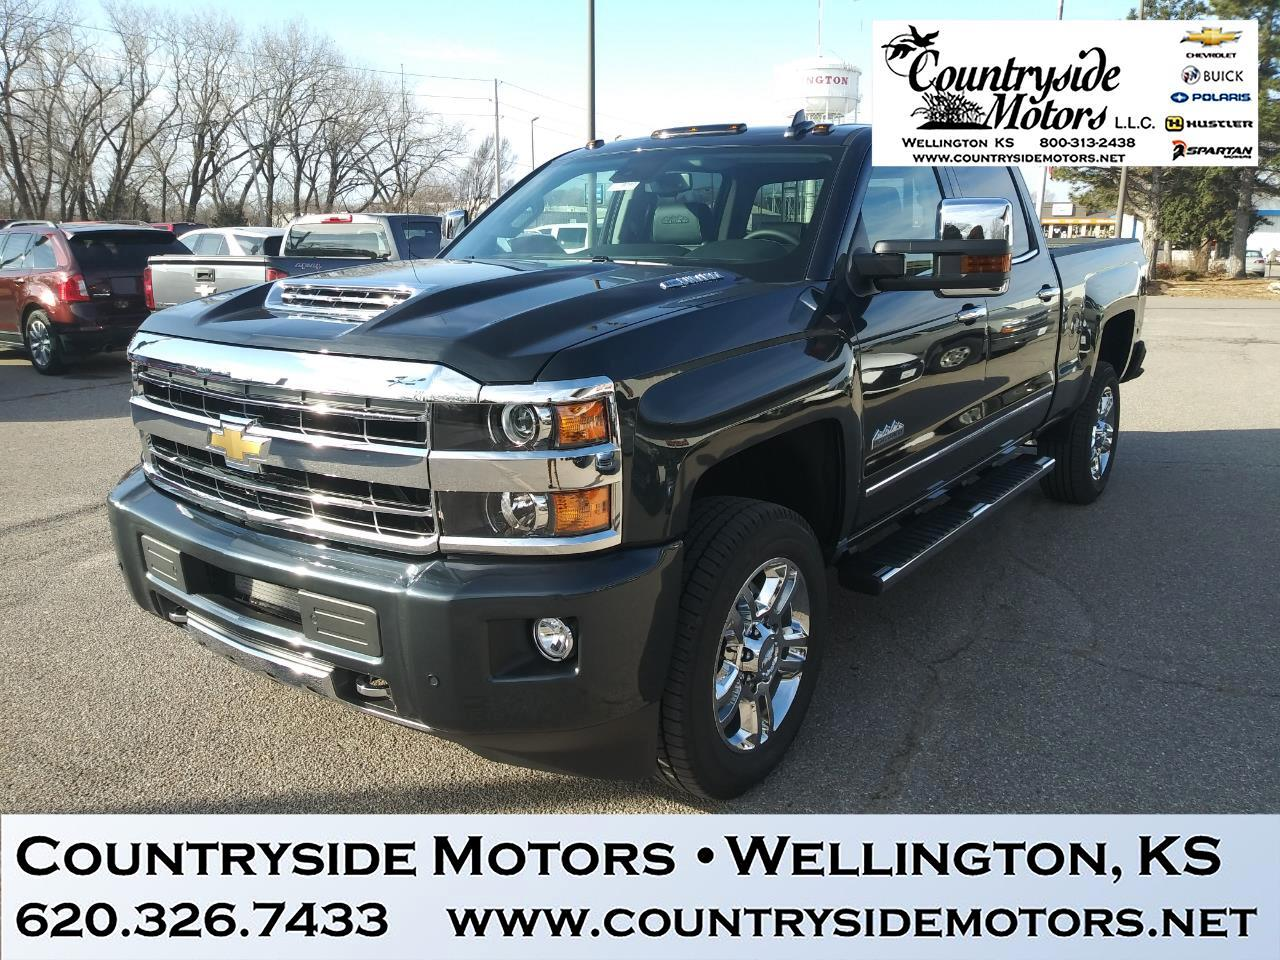 2019 Chevrolet Silverado 2500HD 4WD Crew Cab High Country Edition